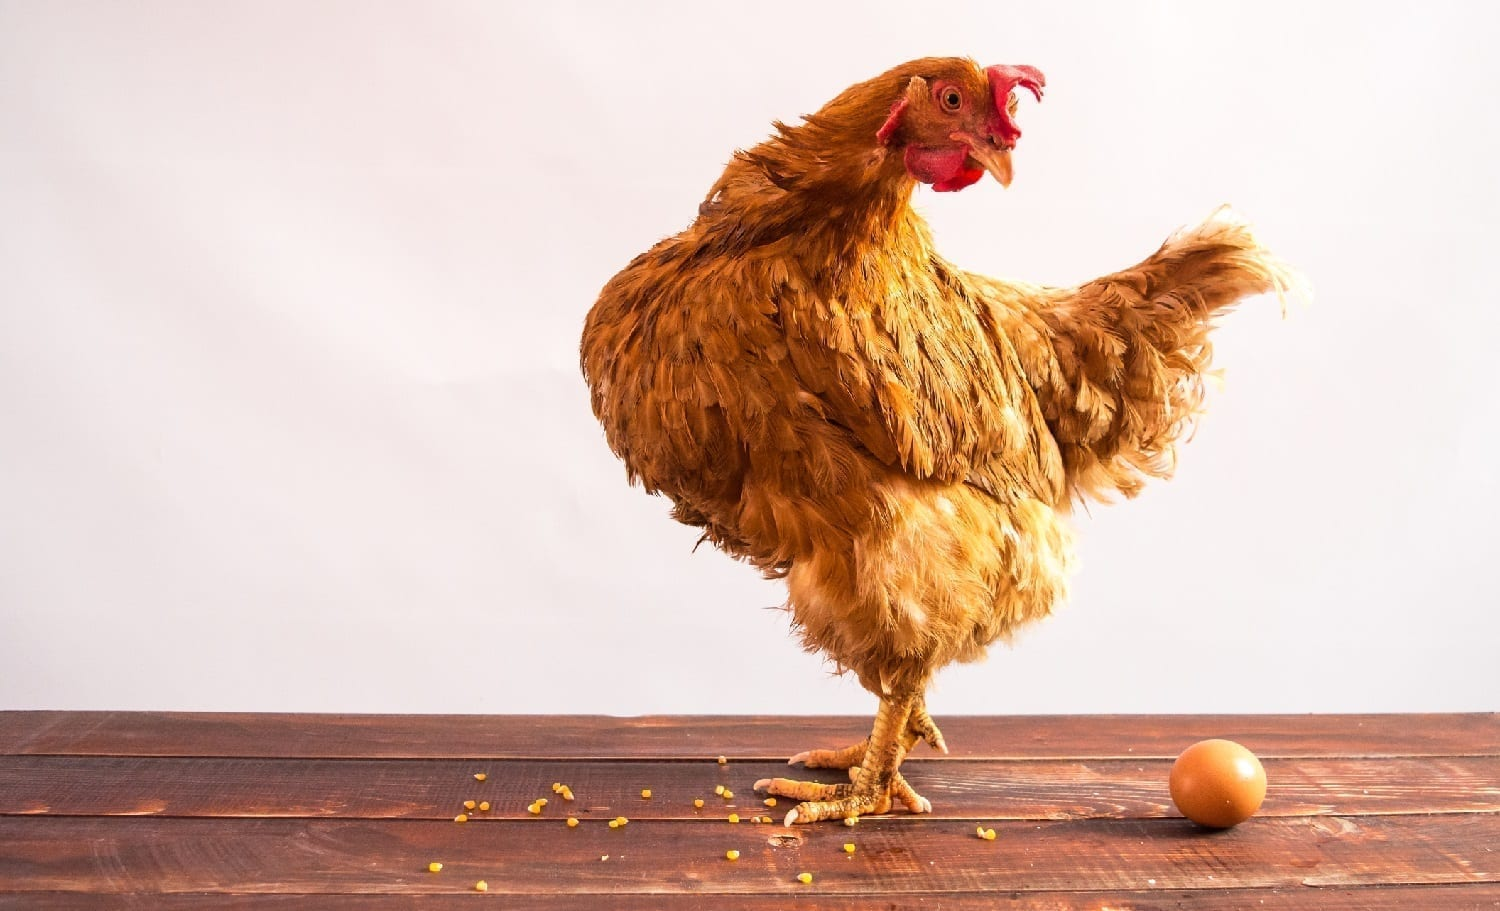 Chicken looking at egg: ID 65974720 © Yuliia Fesyk | Dreamstime.com